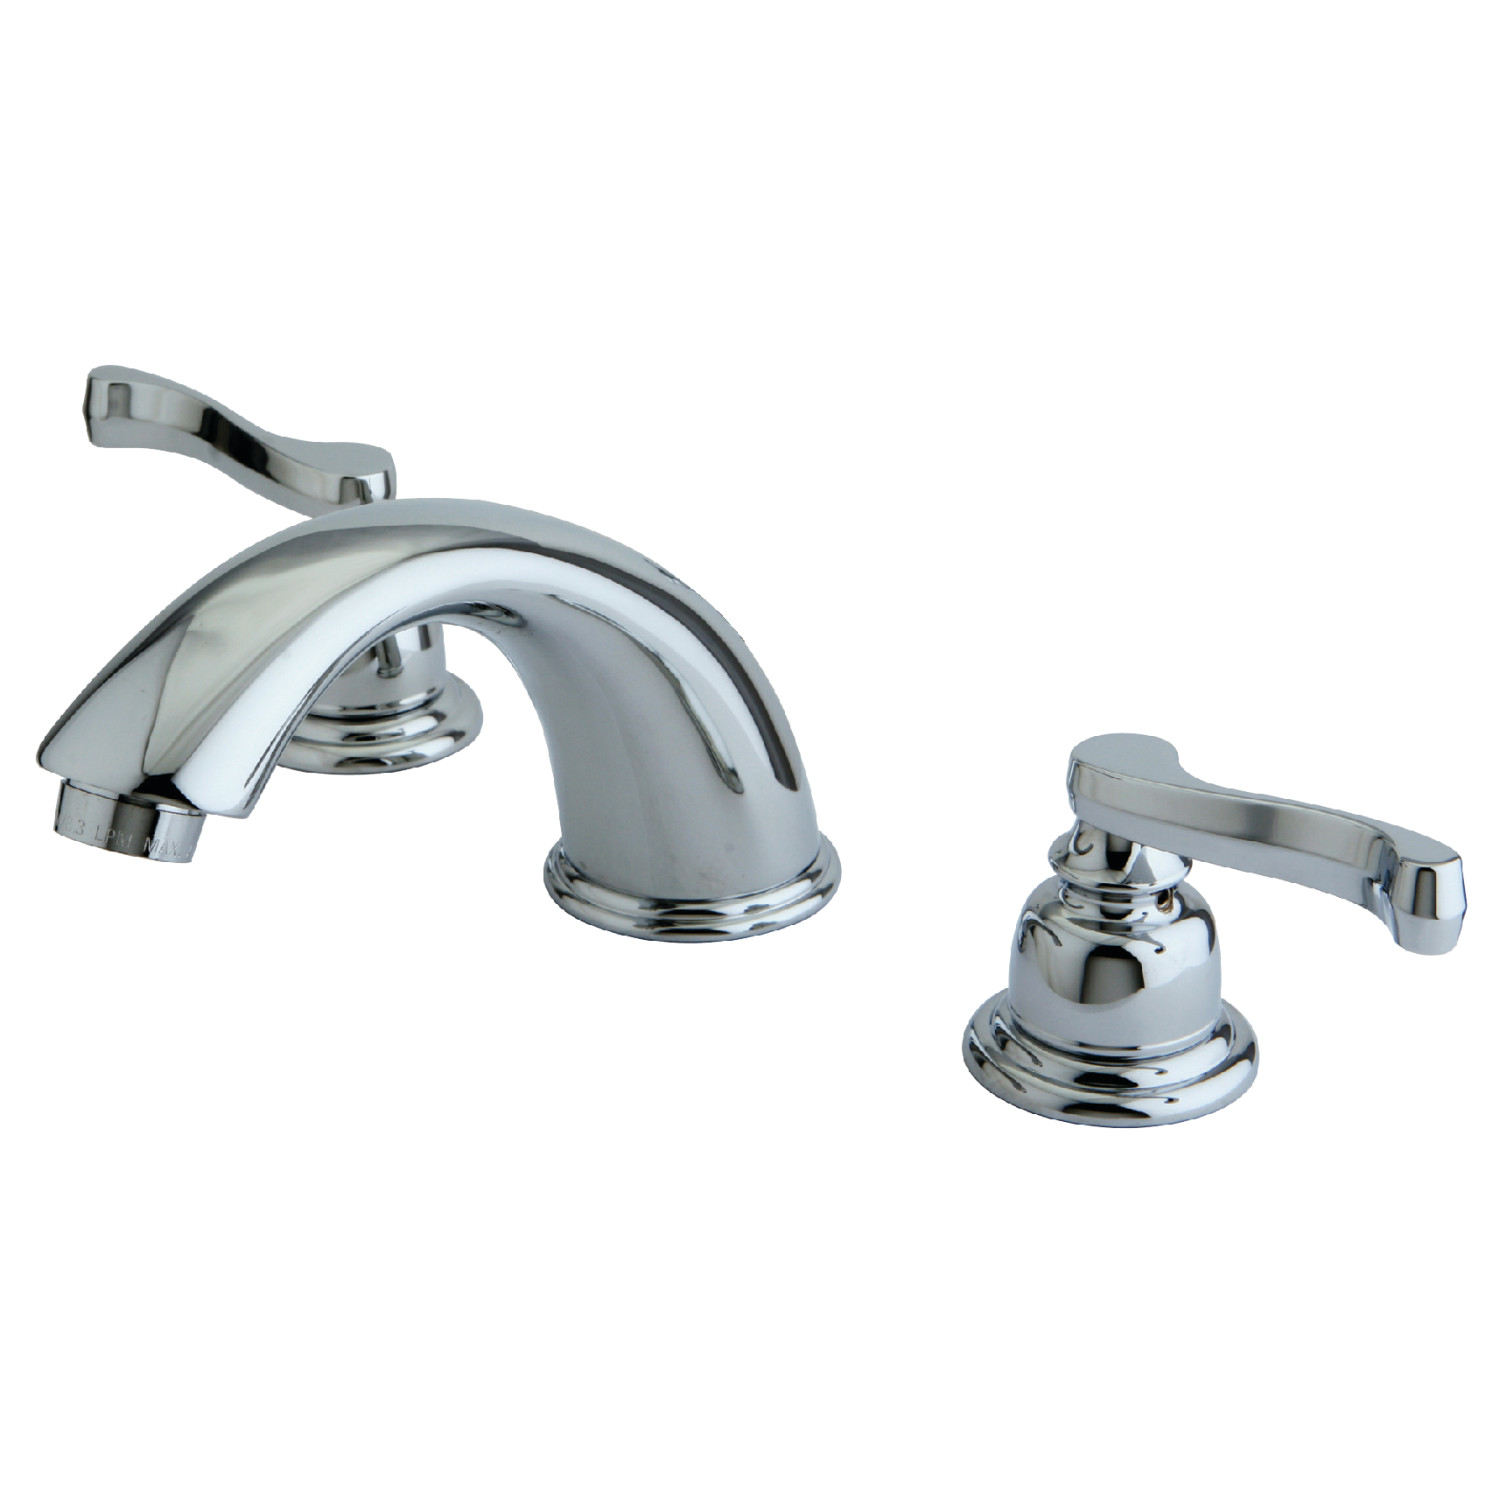 Modern Two-Handle 3-Hole Deck Mounted Widespread Bathroom Faucet with Plastic Pop-Up